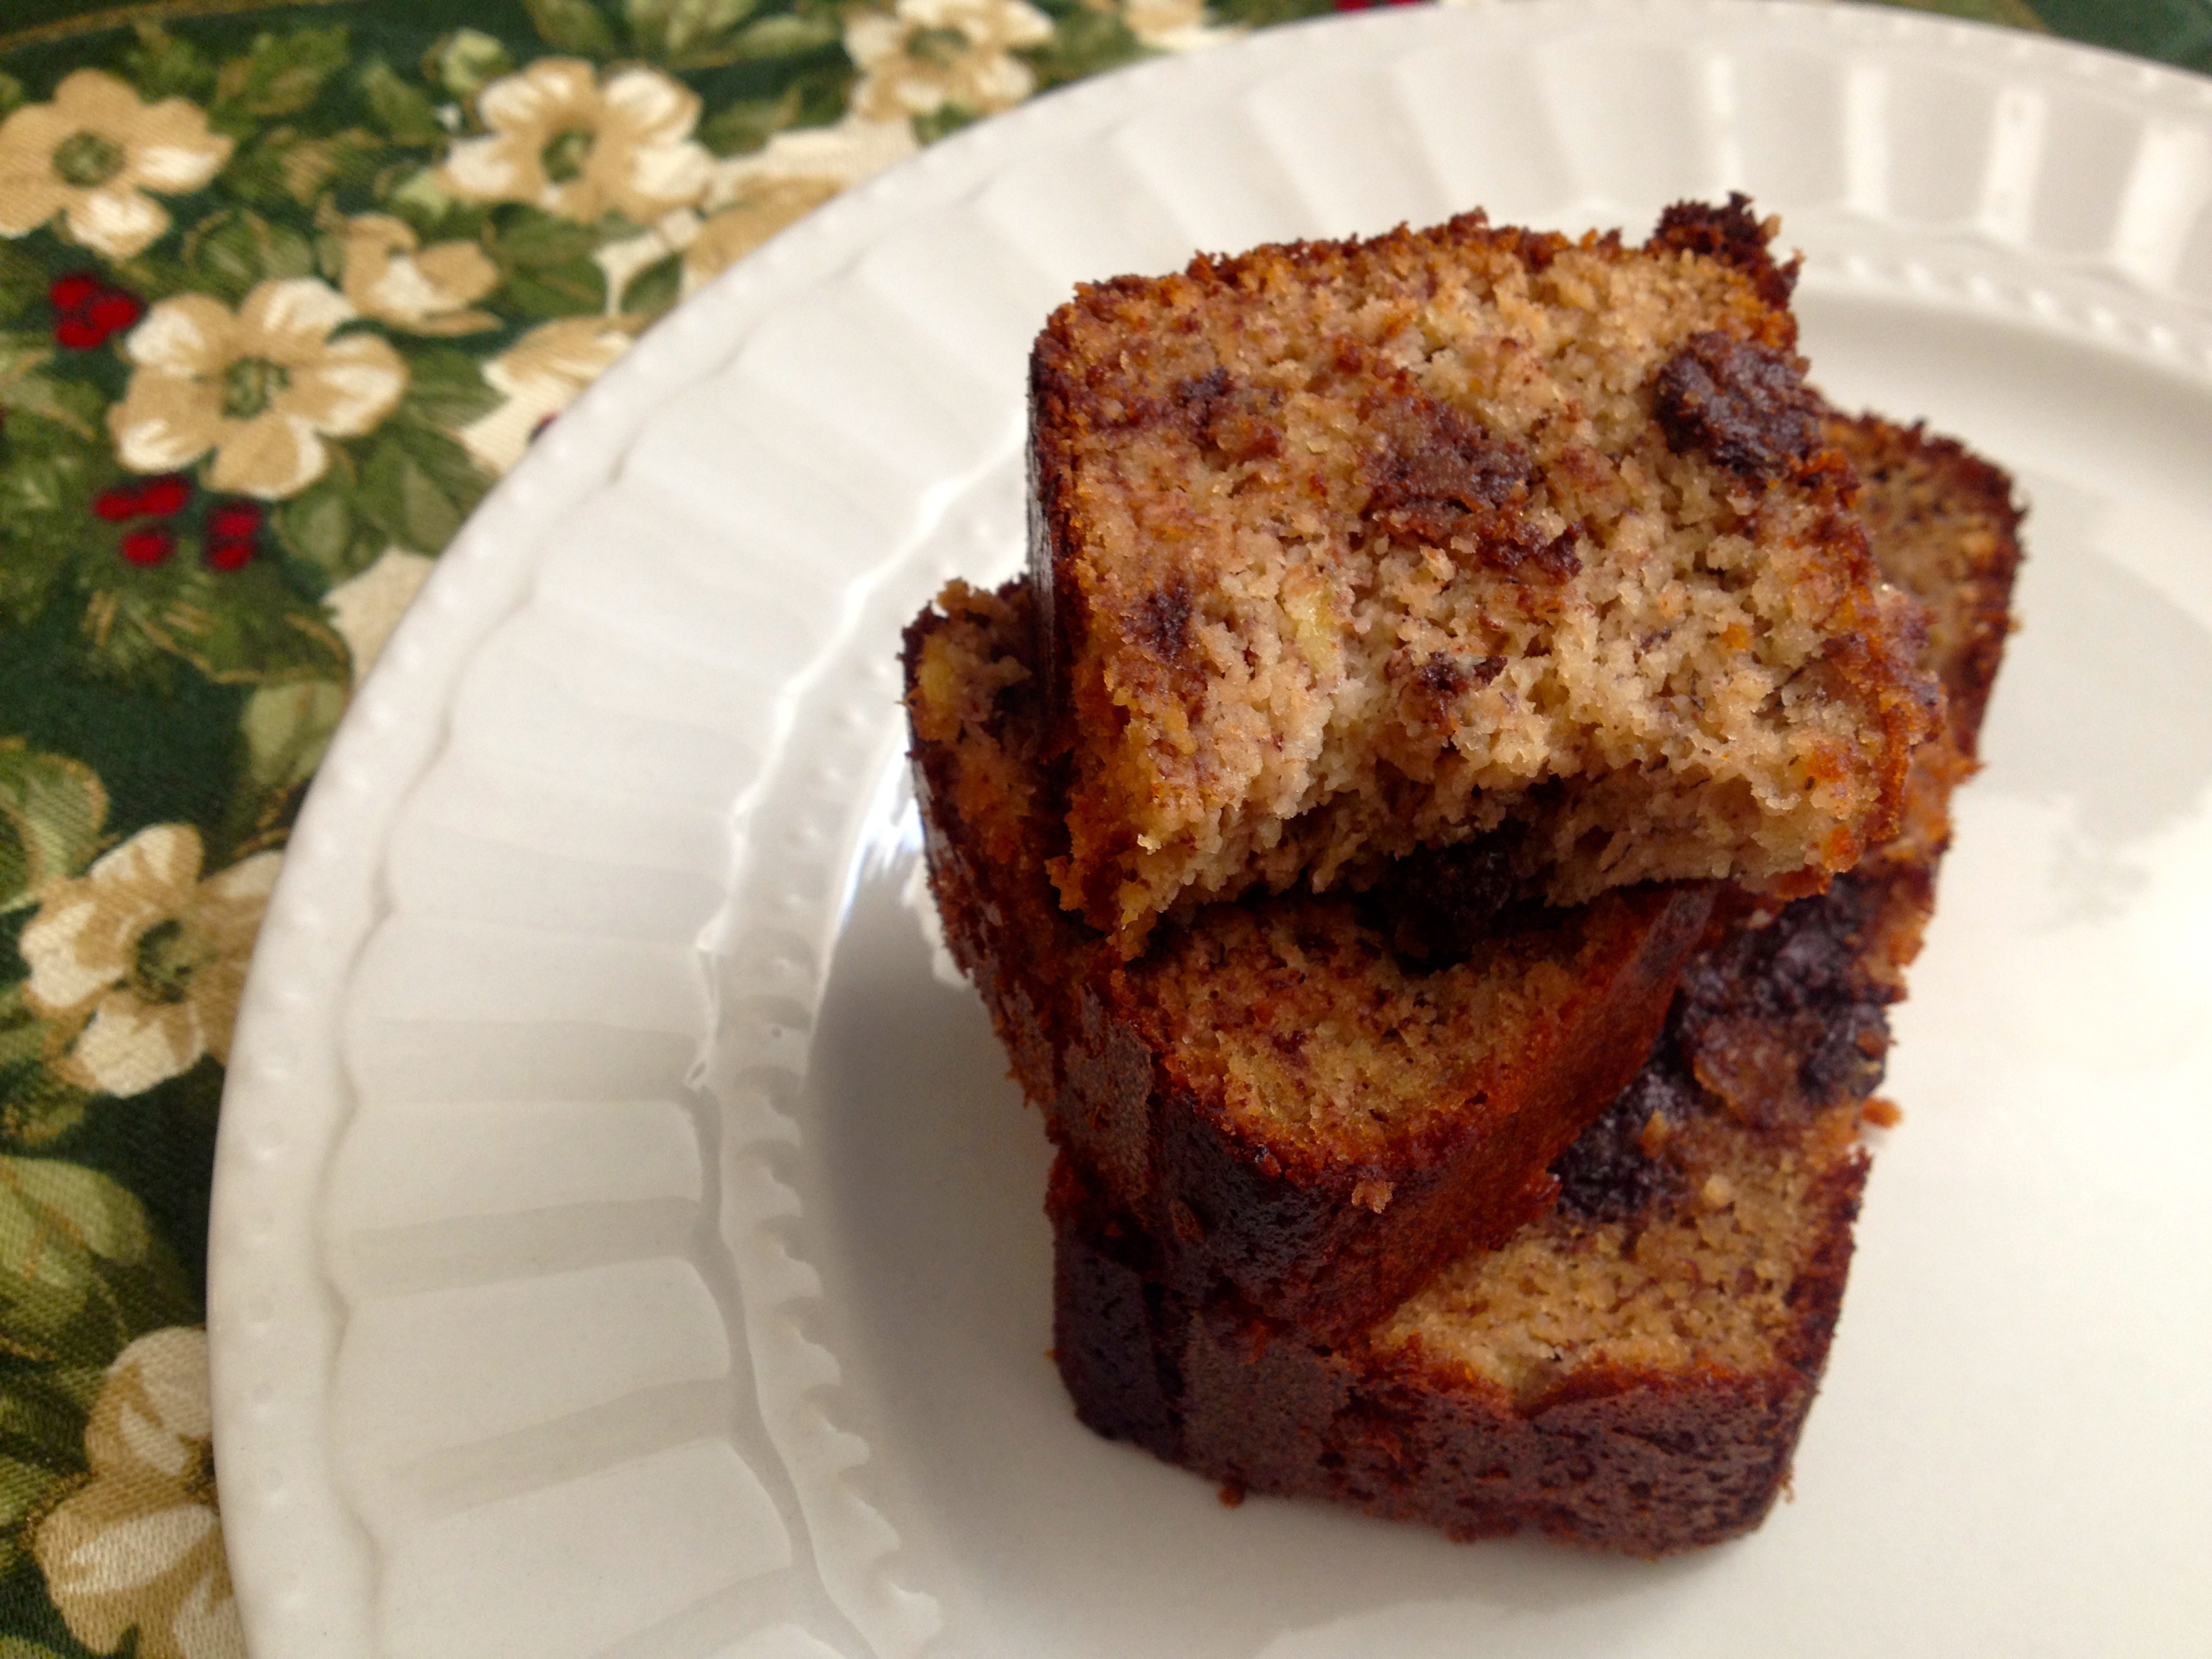 paleo-chocolate-chip-banana-bread6